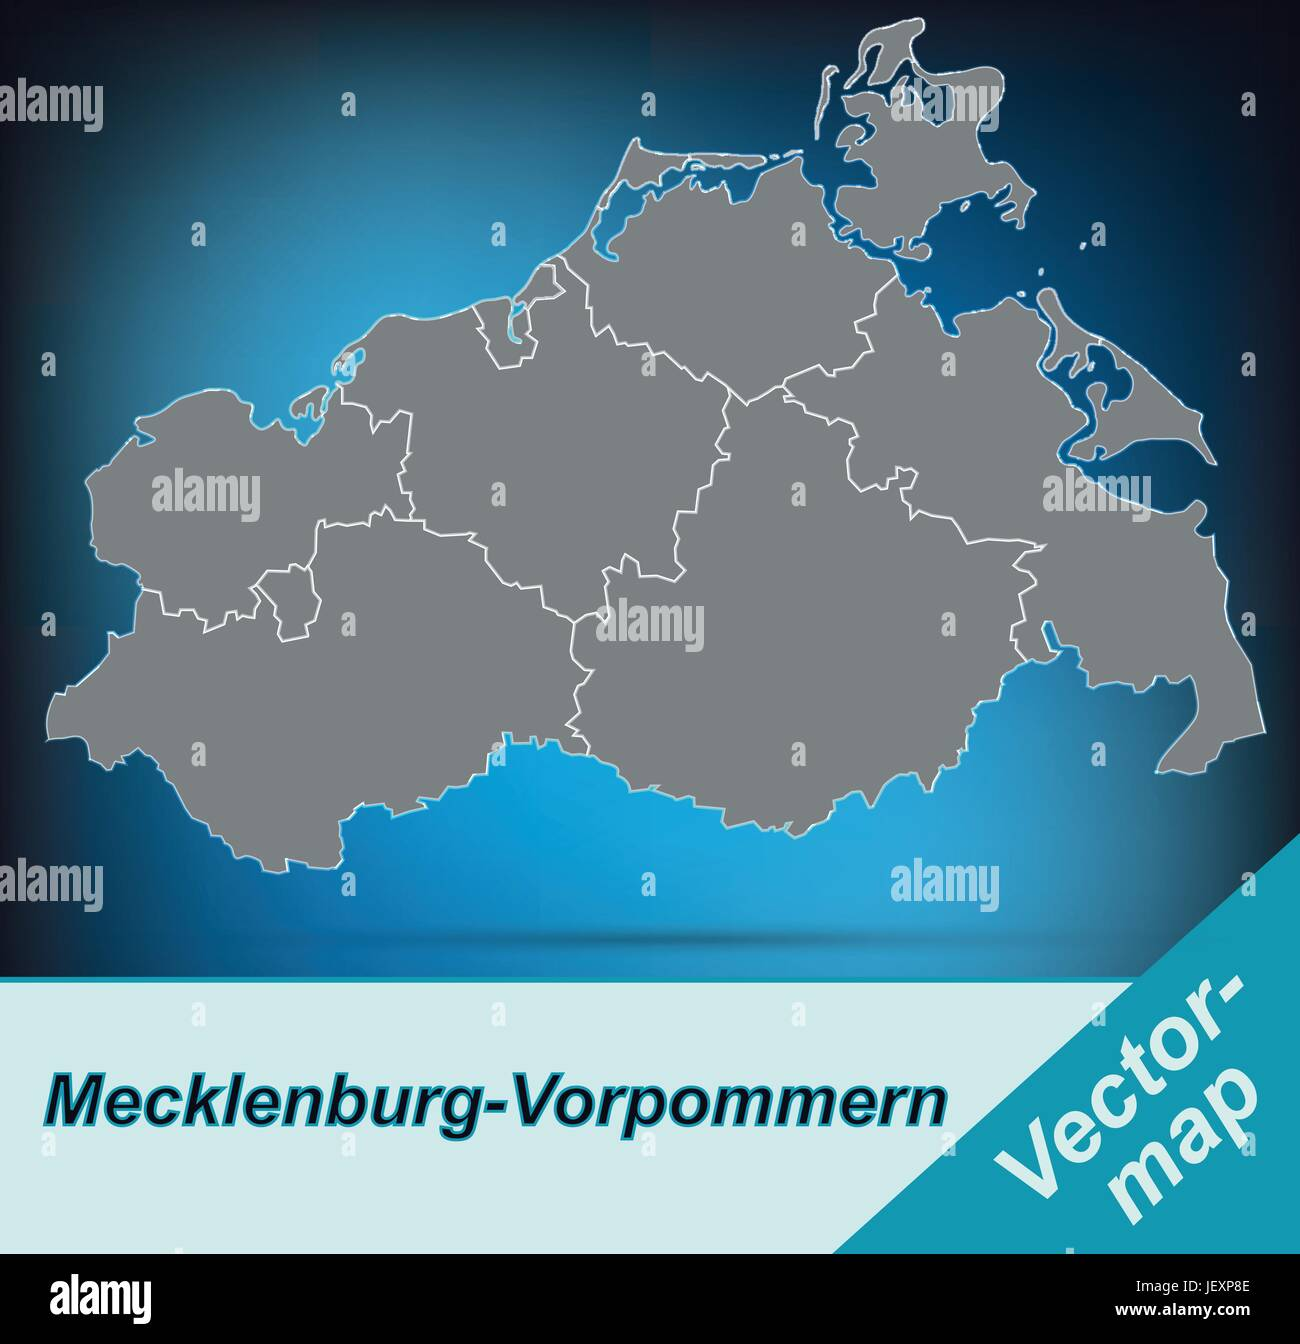 border map of mecklenburg-vorpommern with borders in bright gray - Stock Vector